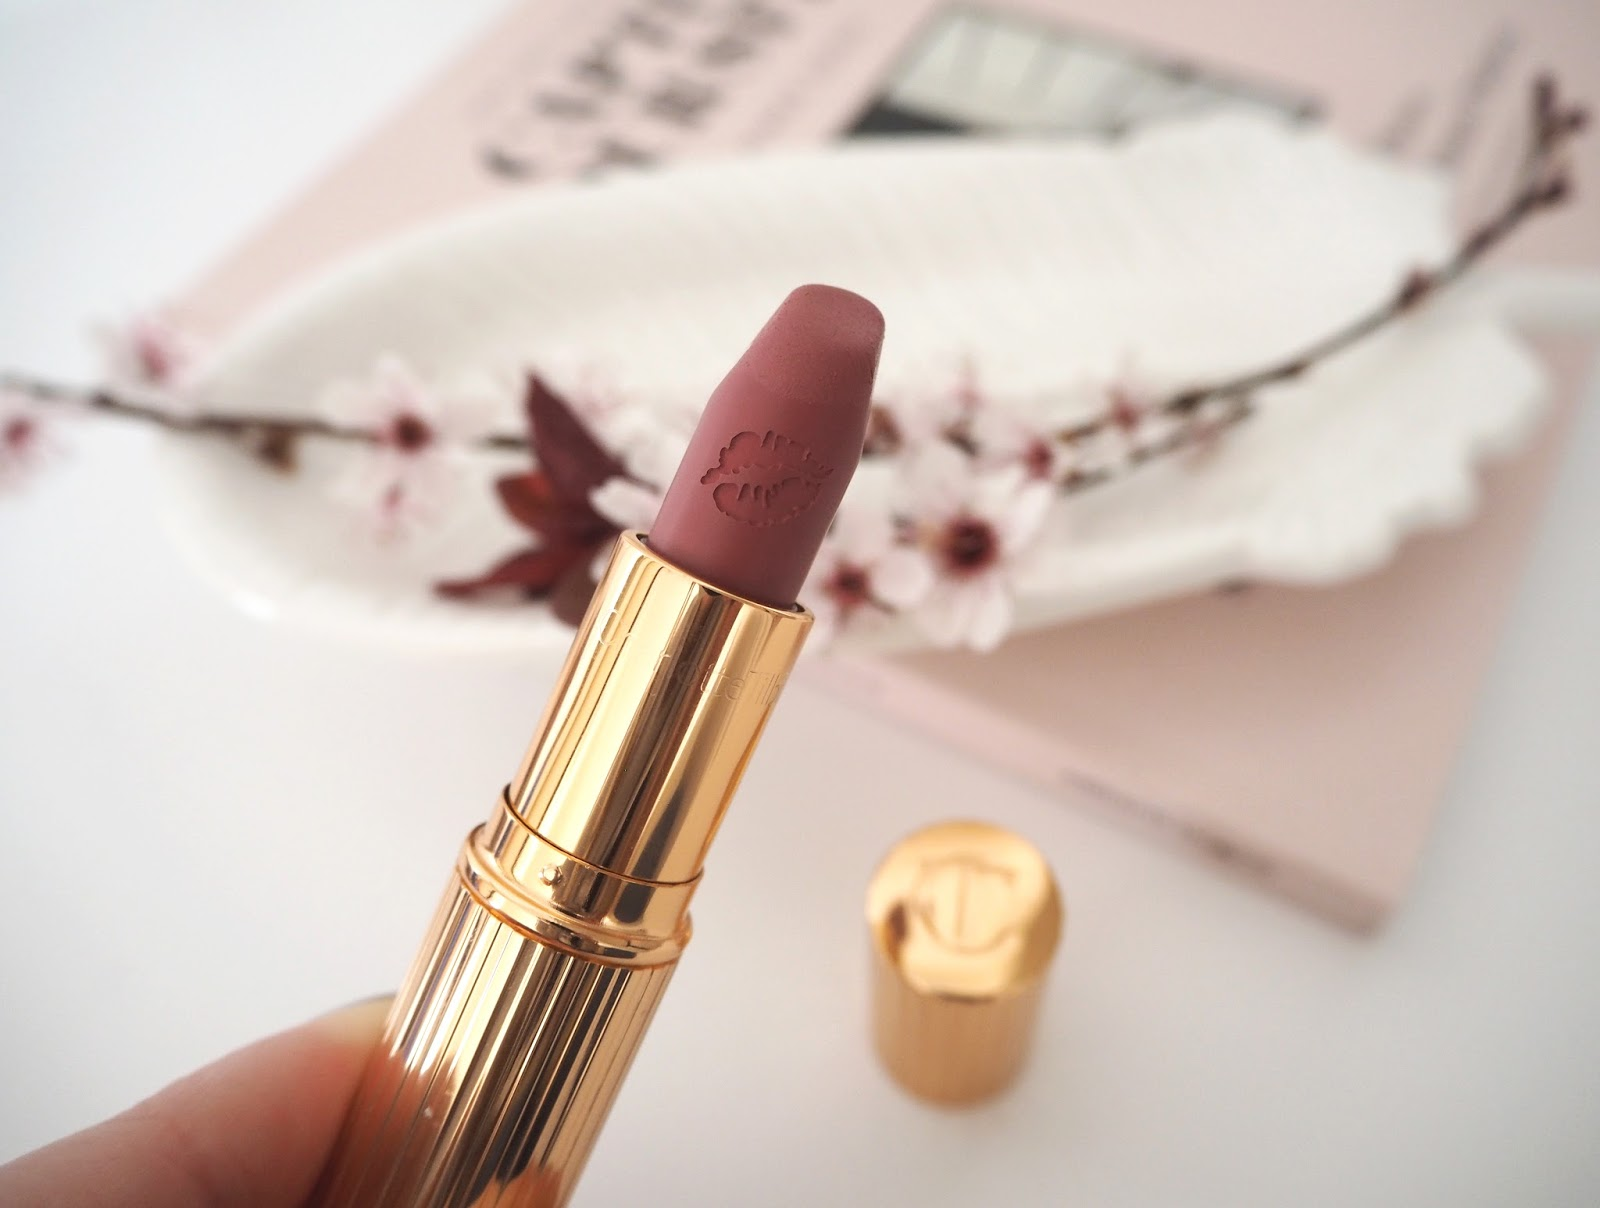 Loves List: March, Katie Kirk Loves, UK Blogger, Beauty Blogger, Lifestyle Blogger, Make Up Blogger, Skincare Blogger, Monthly Favourites, Beauty Review, Skincare Review, Charlotte Tilbury Secret Selma Lipstick, Make Up Review, Charlotte Tilbury, Make Up Swatches